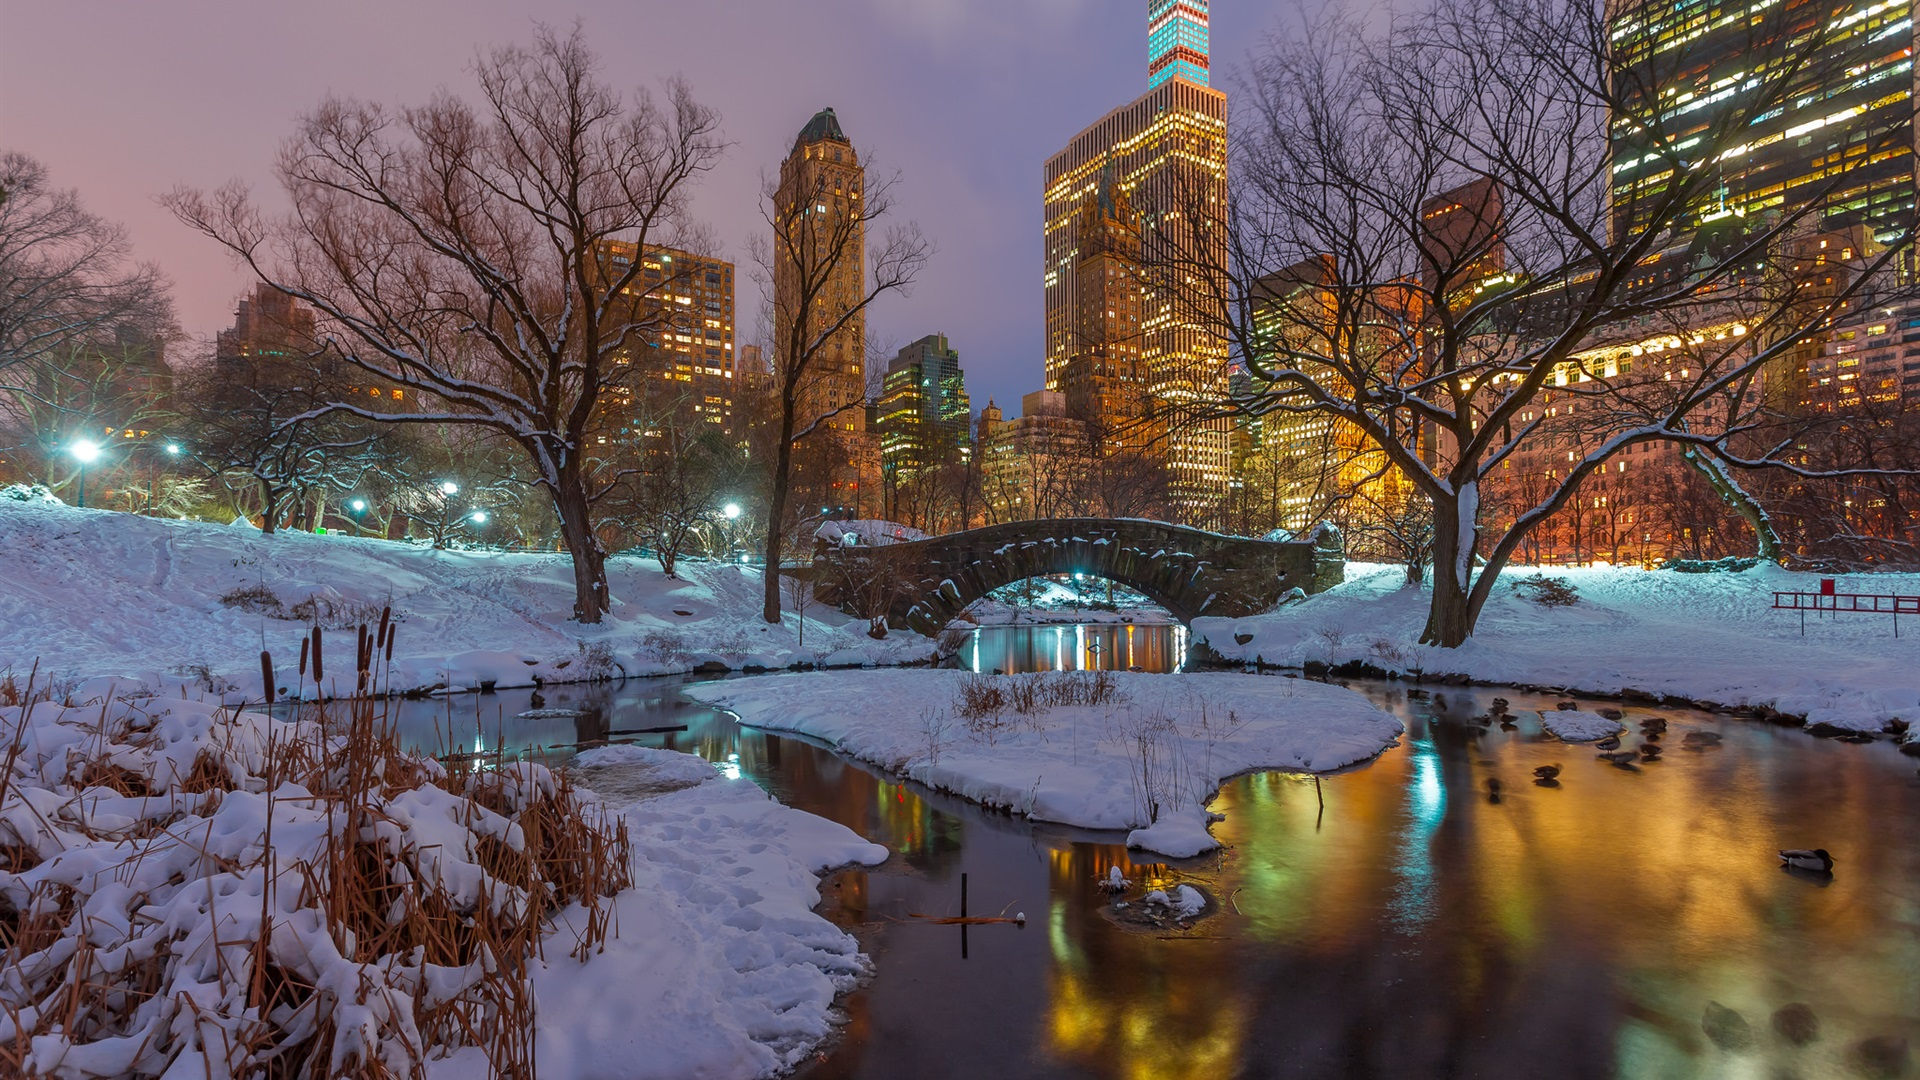 Times Square Iphone 6 Wallpaper Wallpaper New York Central Park Snow Trees River